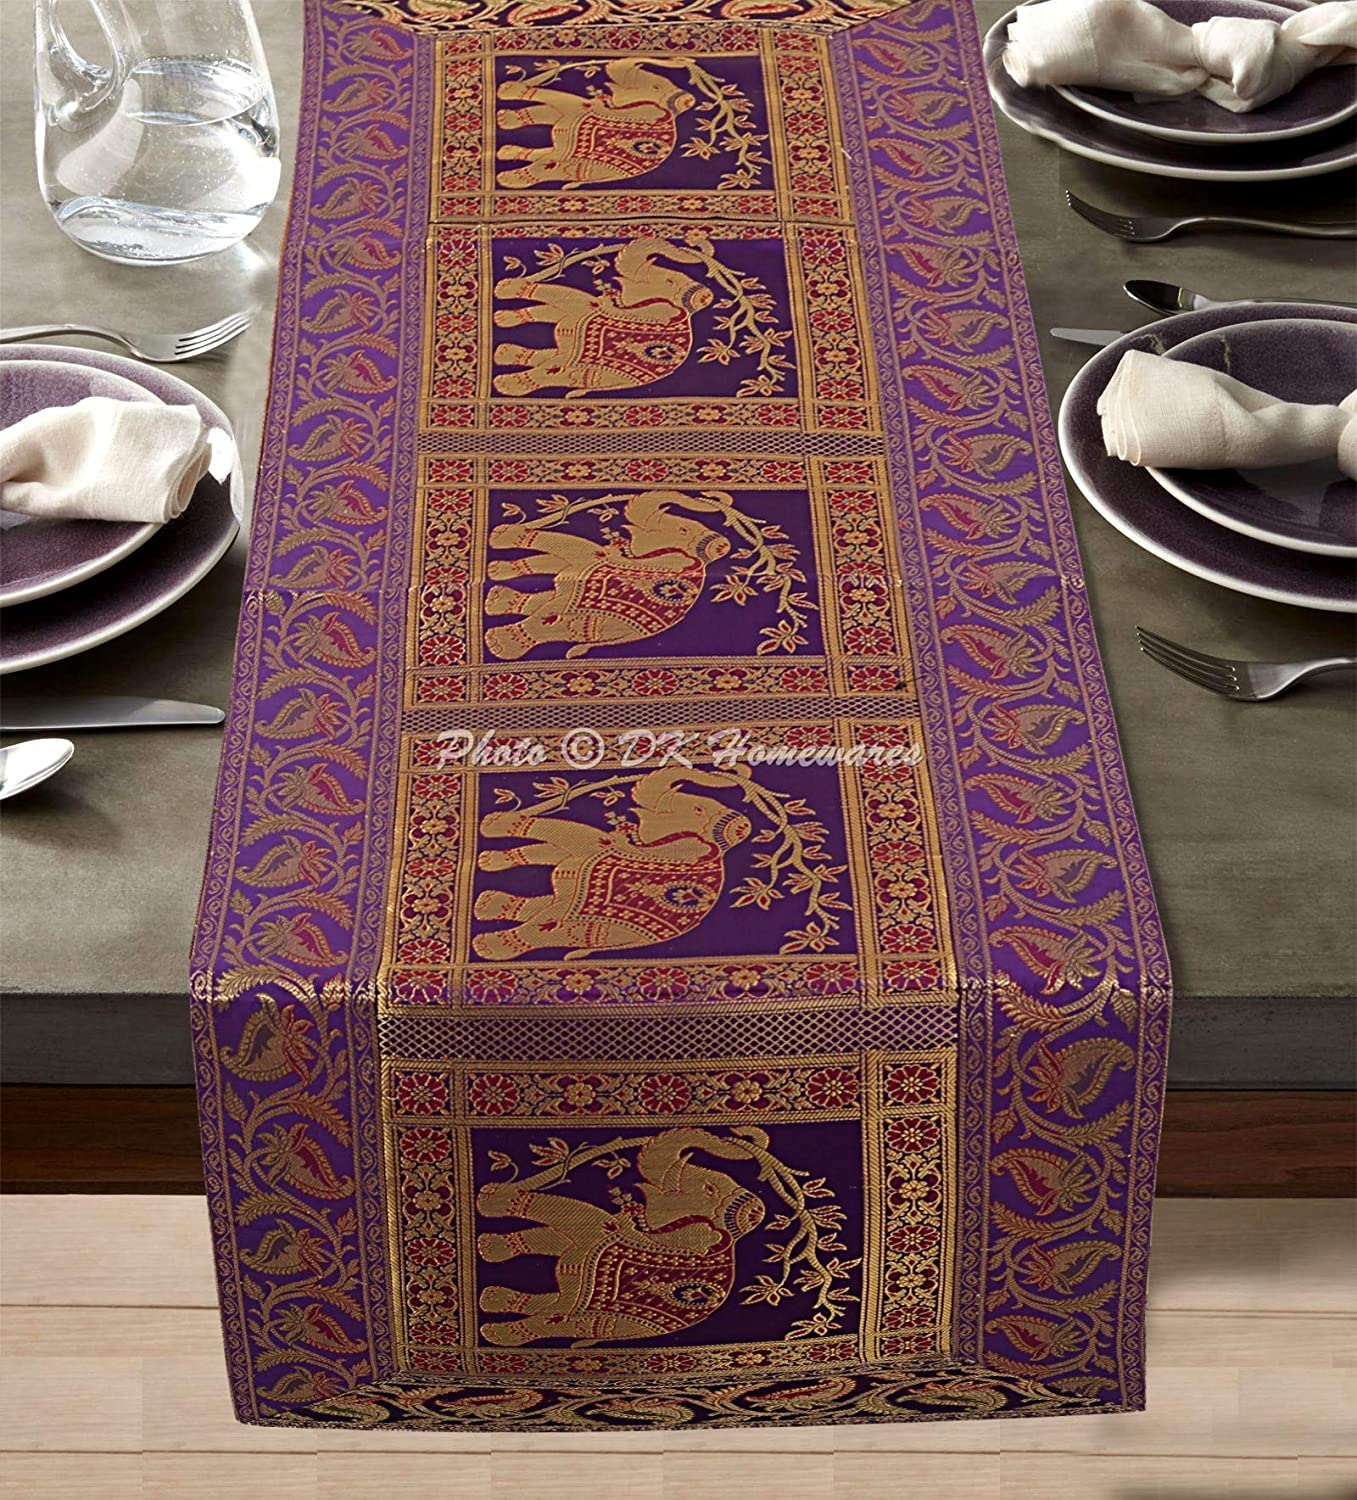 Home Kitchen Table Runners 16 X 180 Kess Inhouse Marianna Tankelevich Cute Birds Purple Pink Lavender Table Runner